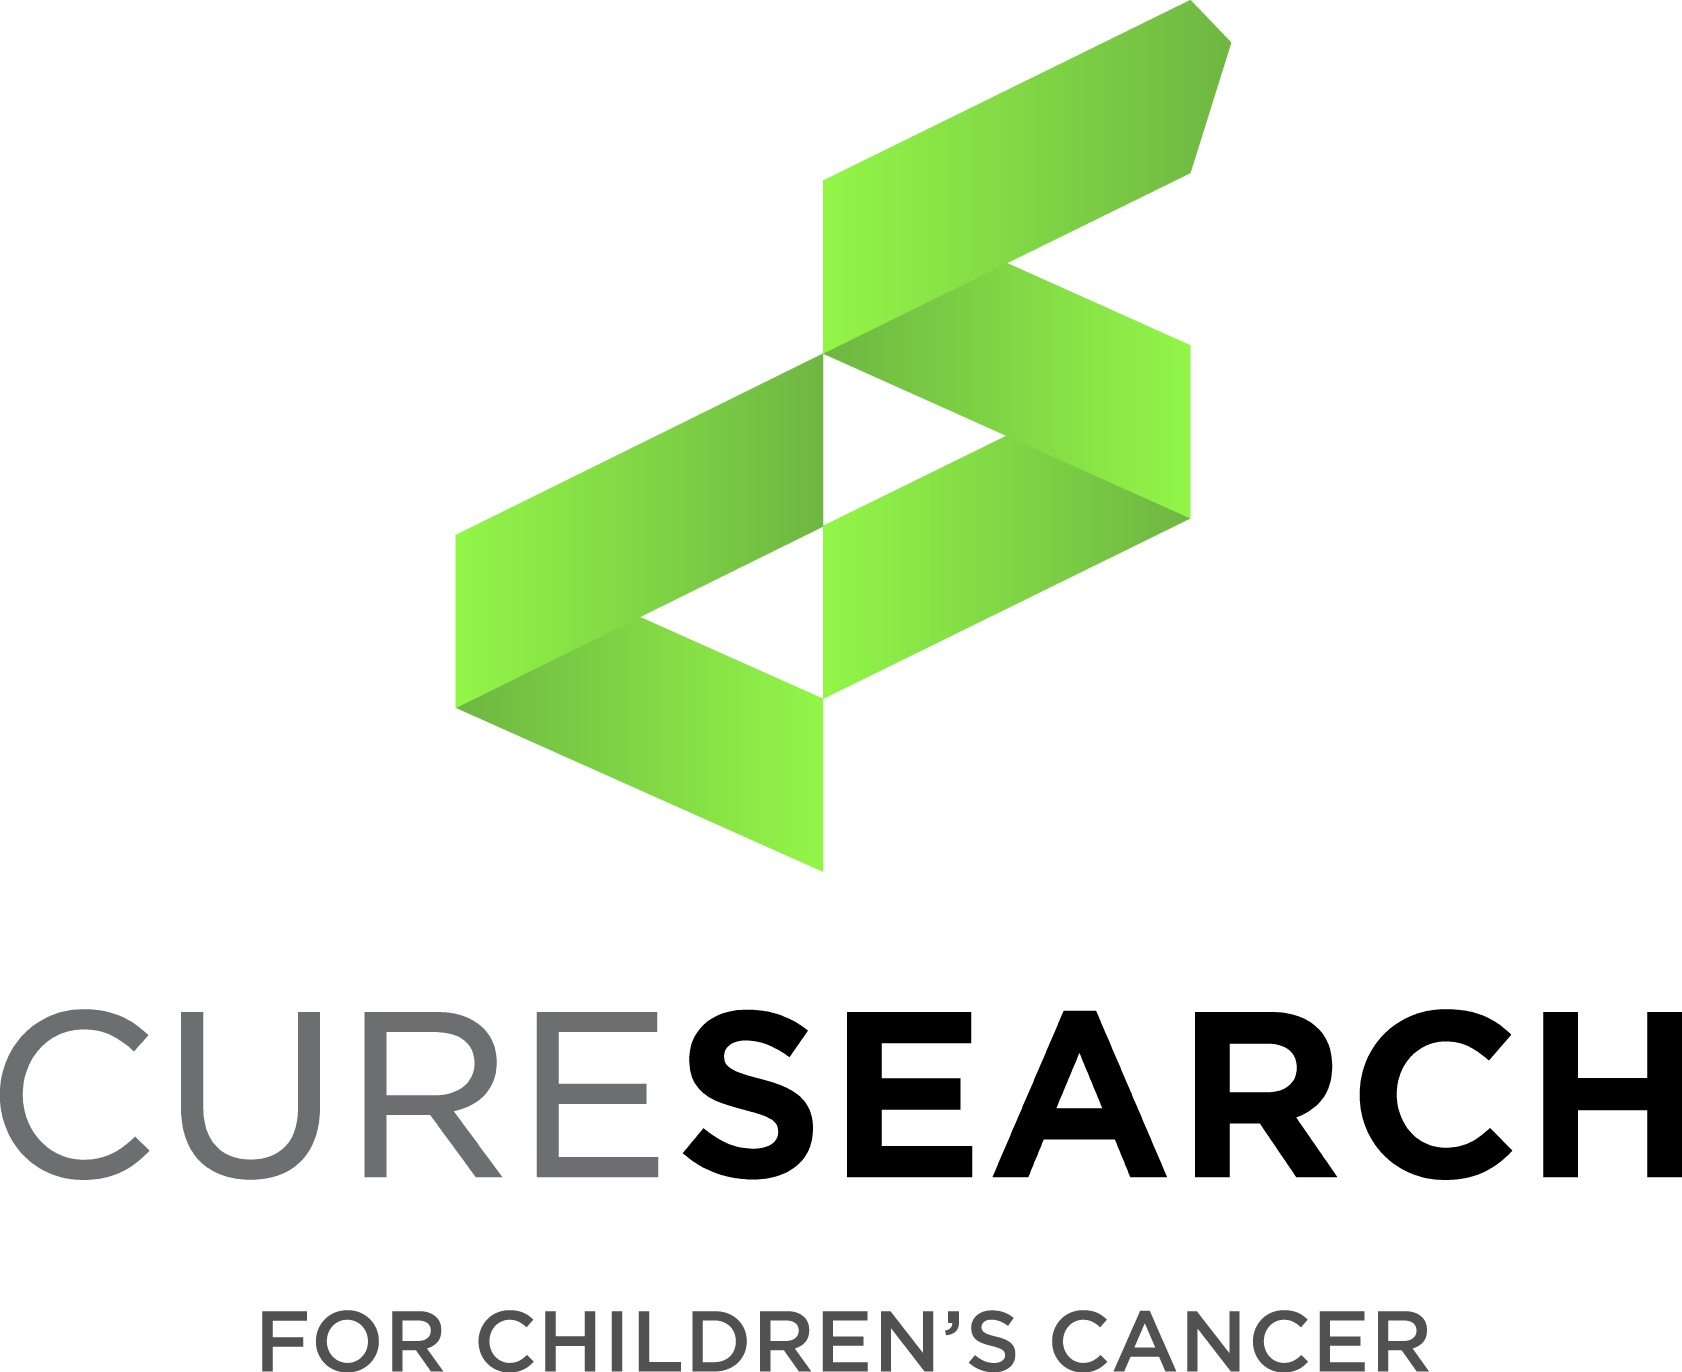 CureSearch for Children's Cancer logo